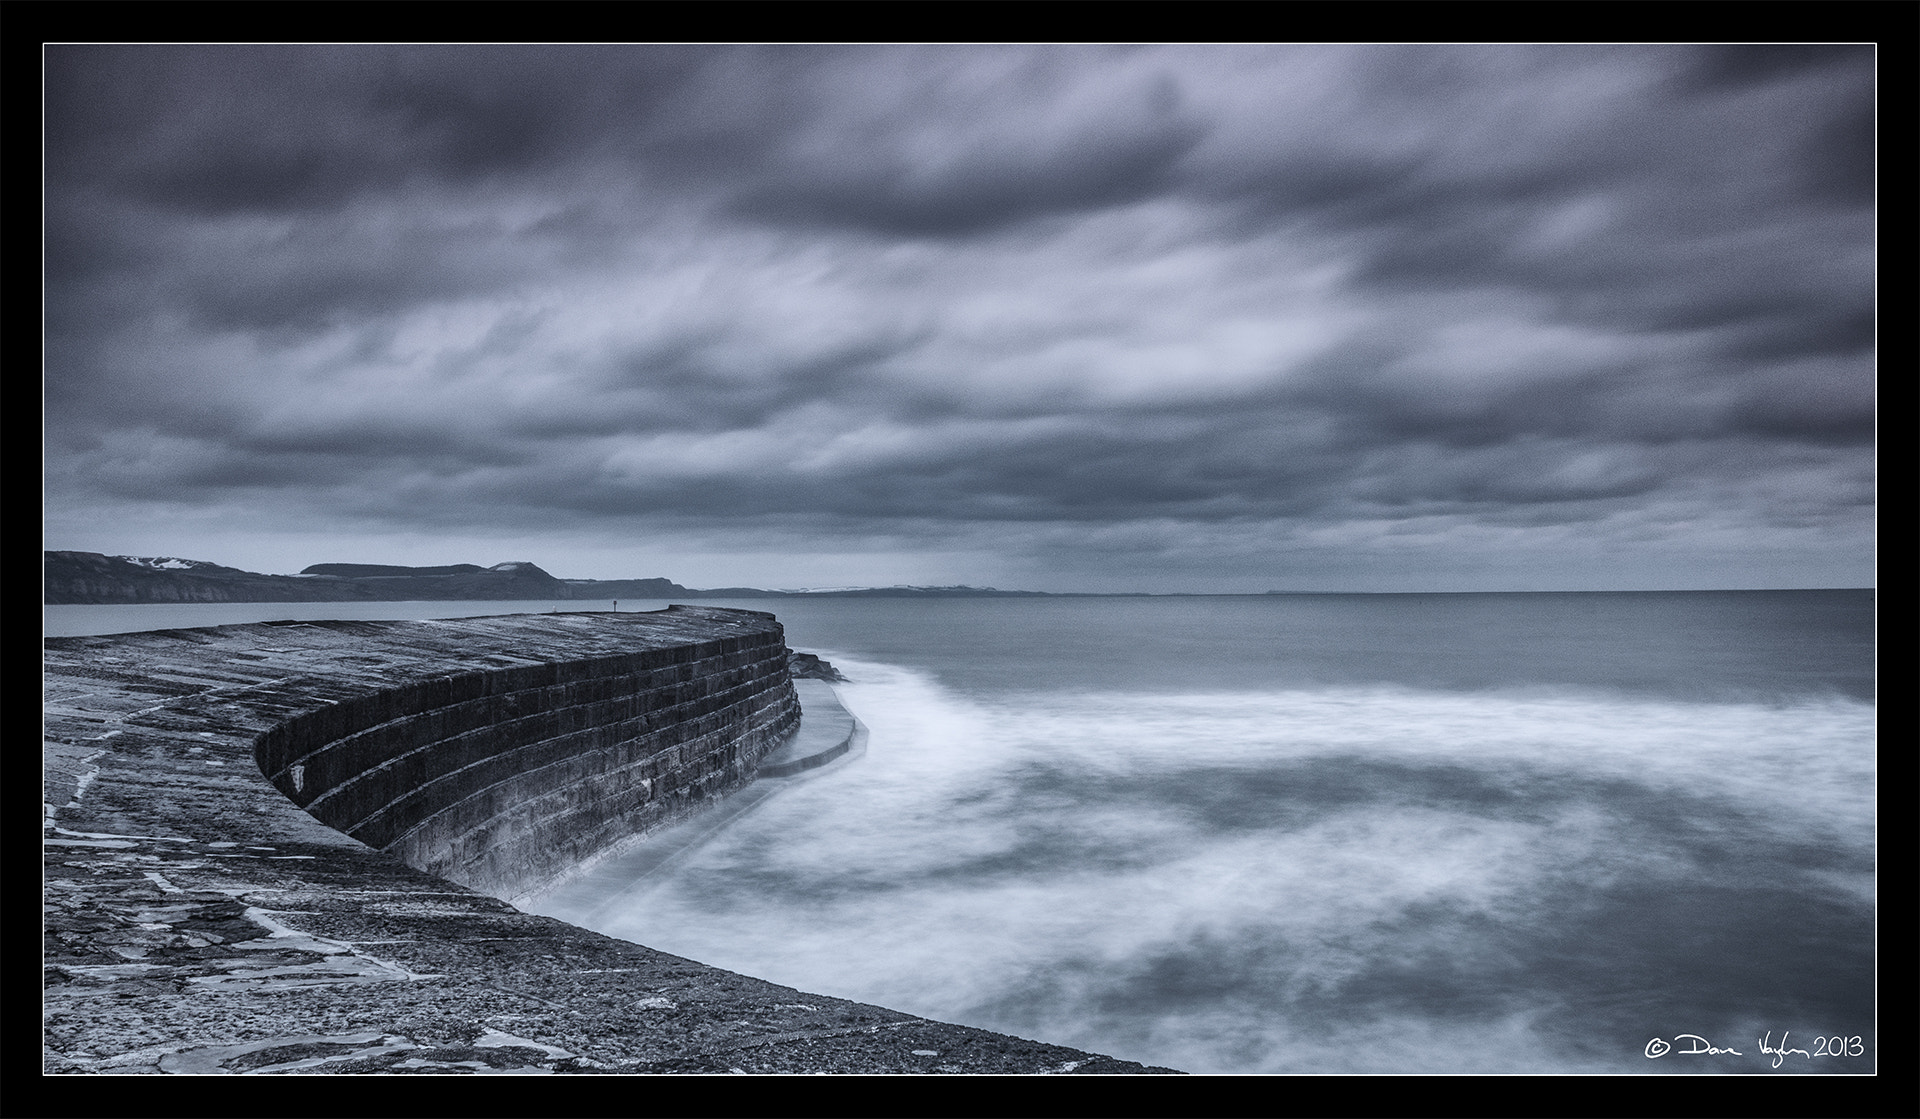 Photograph The Cobb II by David Vaughan on 500px